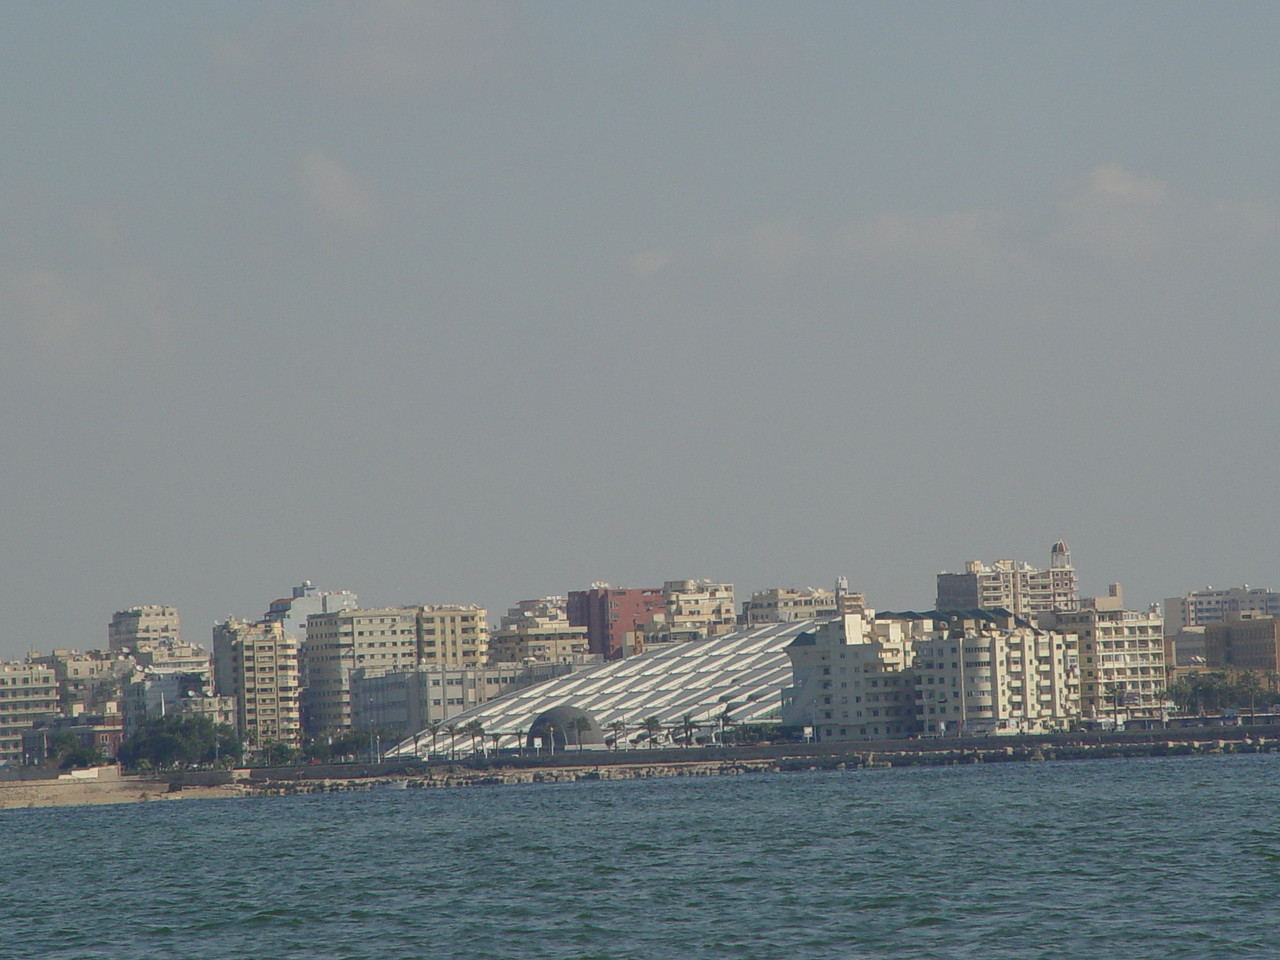 g) I take a photo of the new library from the harbor.